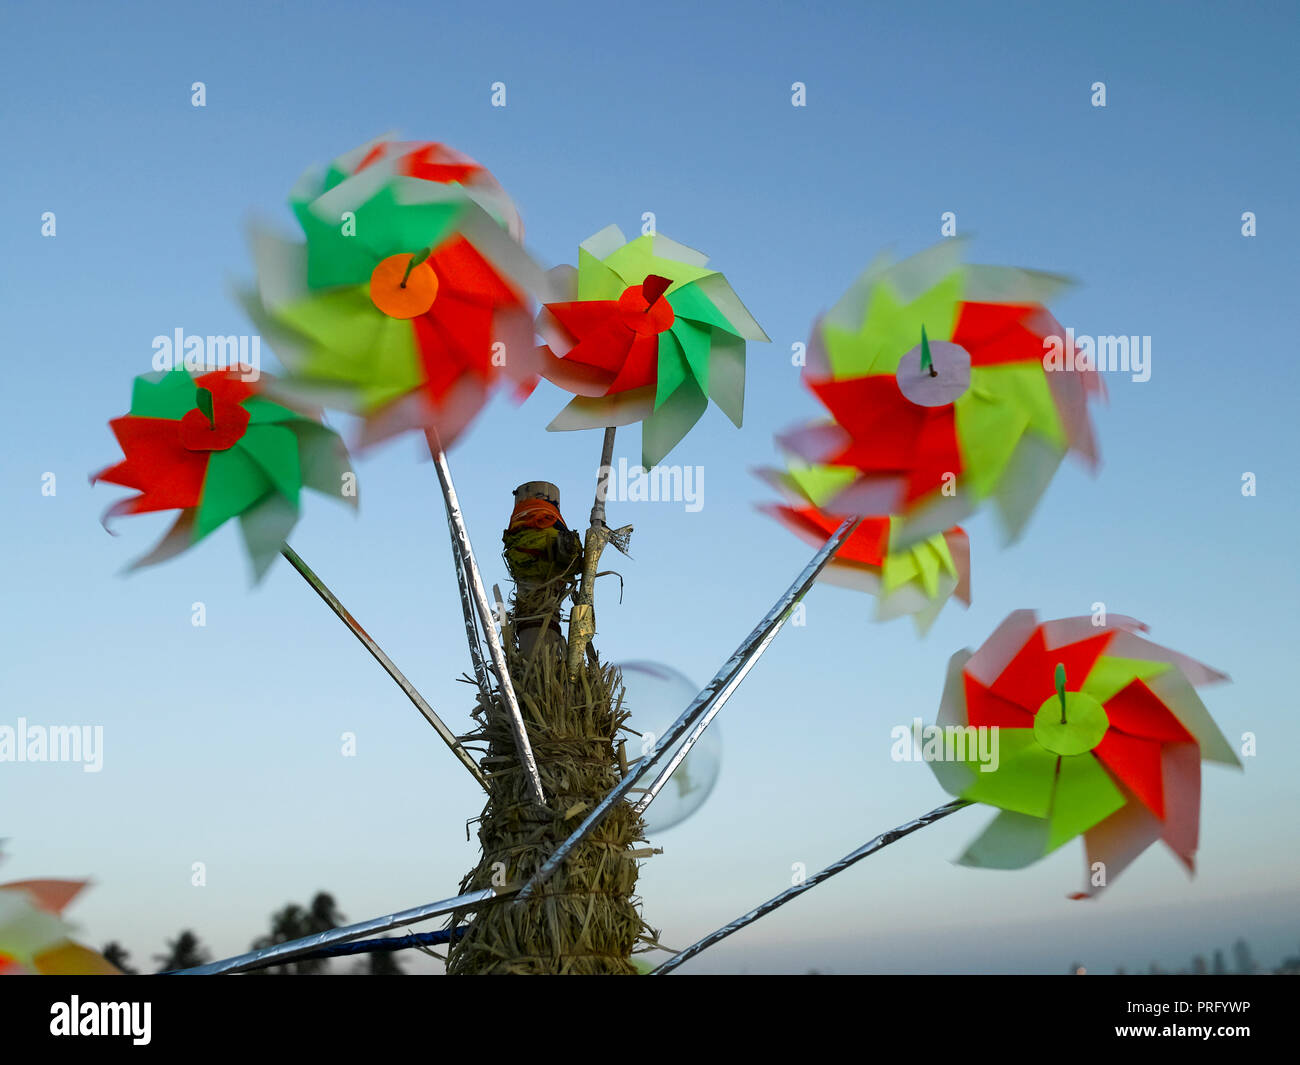 PIN WHEELS WHIRLING IN THE WIND AT CHOWPATTY, MUMBAI, INDIA, ASIA - Stock Image